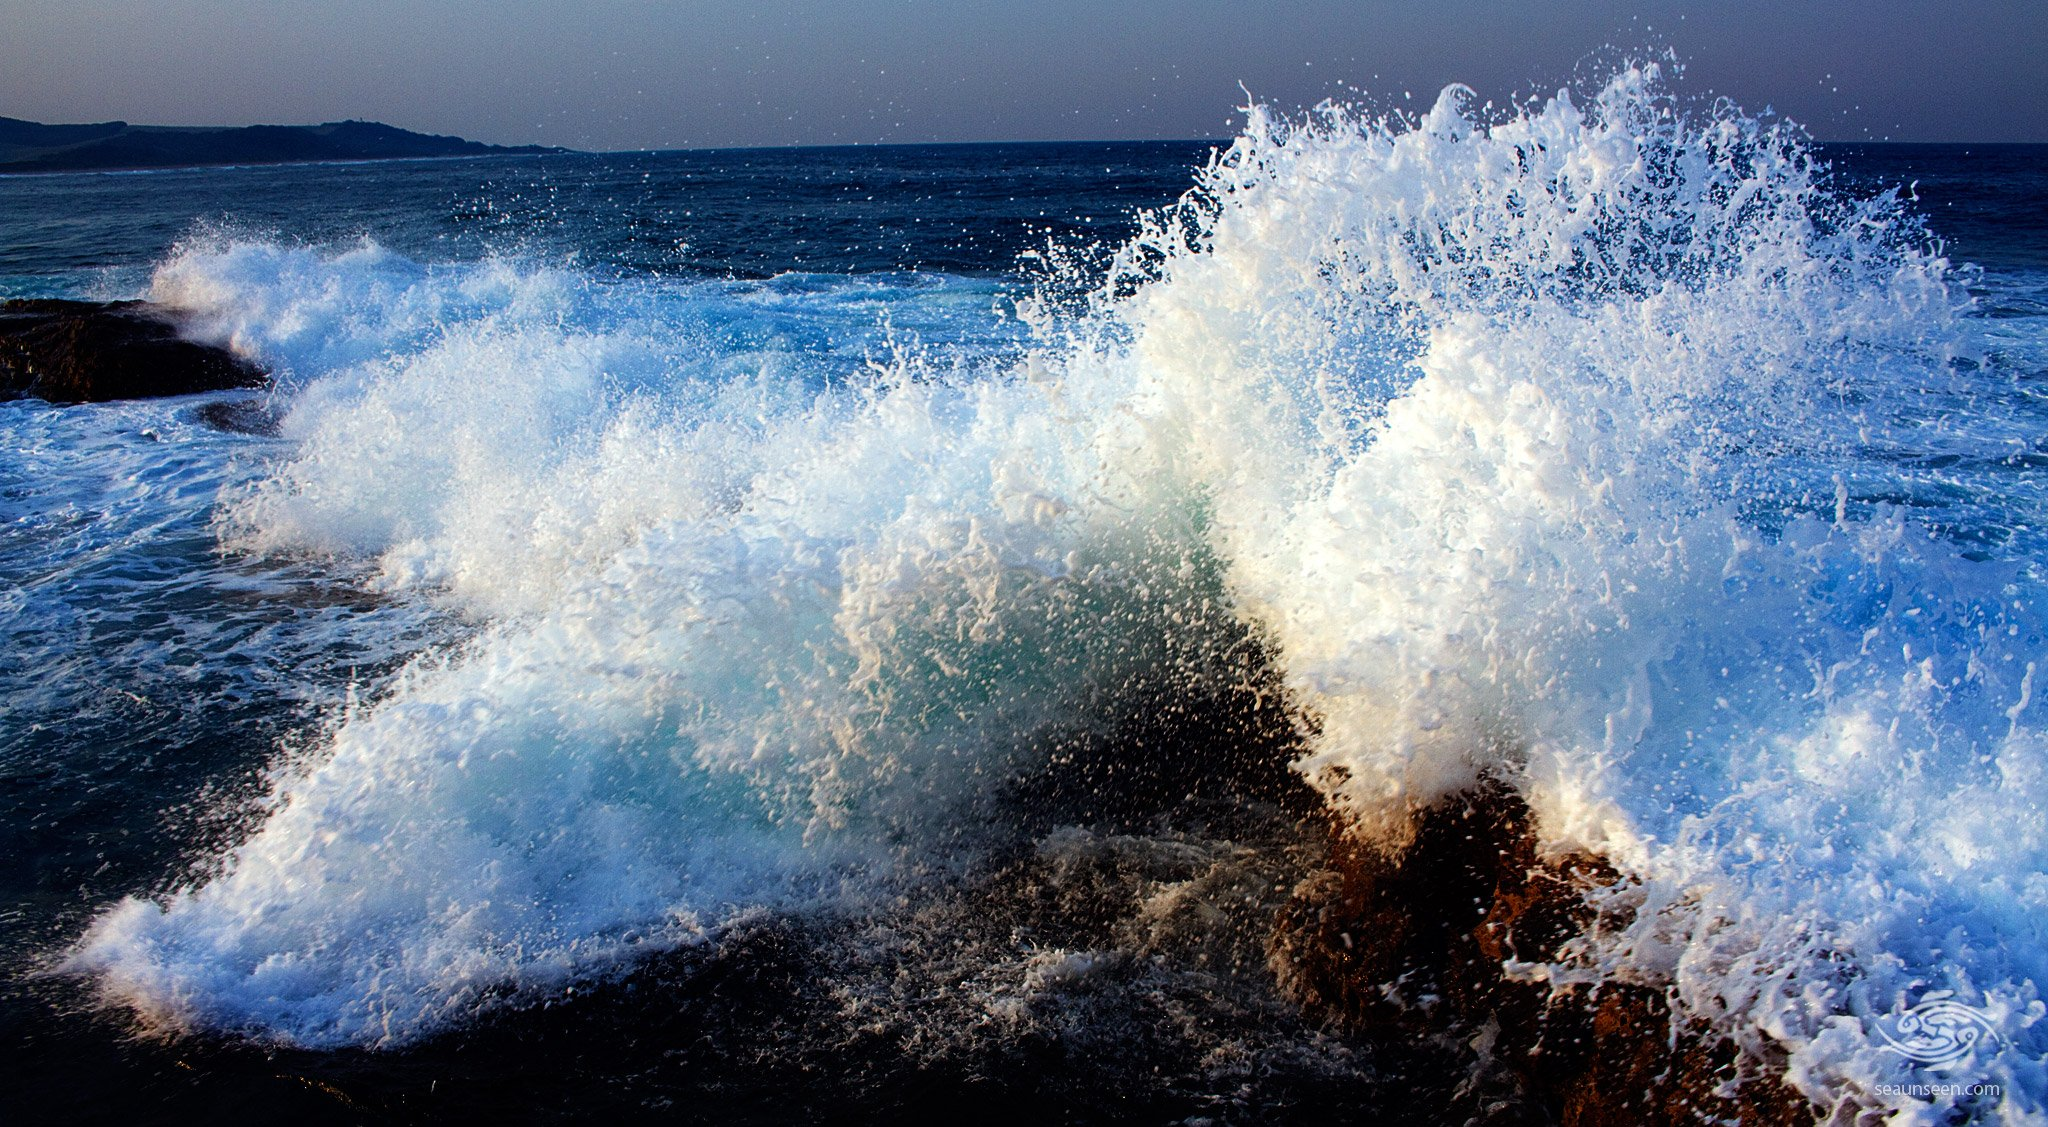 Crashing Waves in Aliwal Shoal